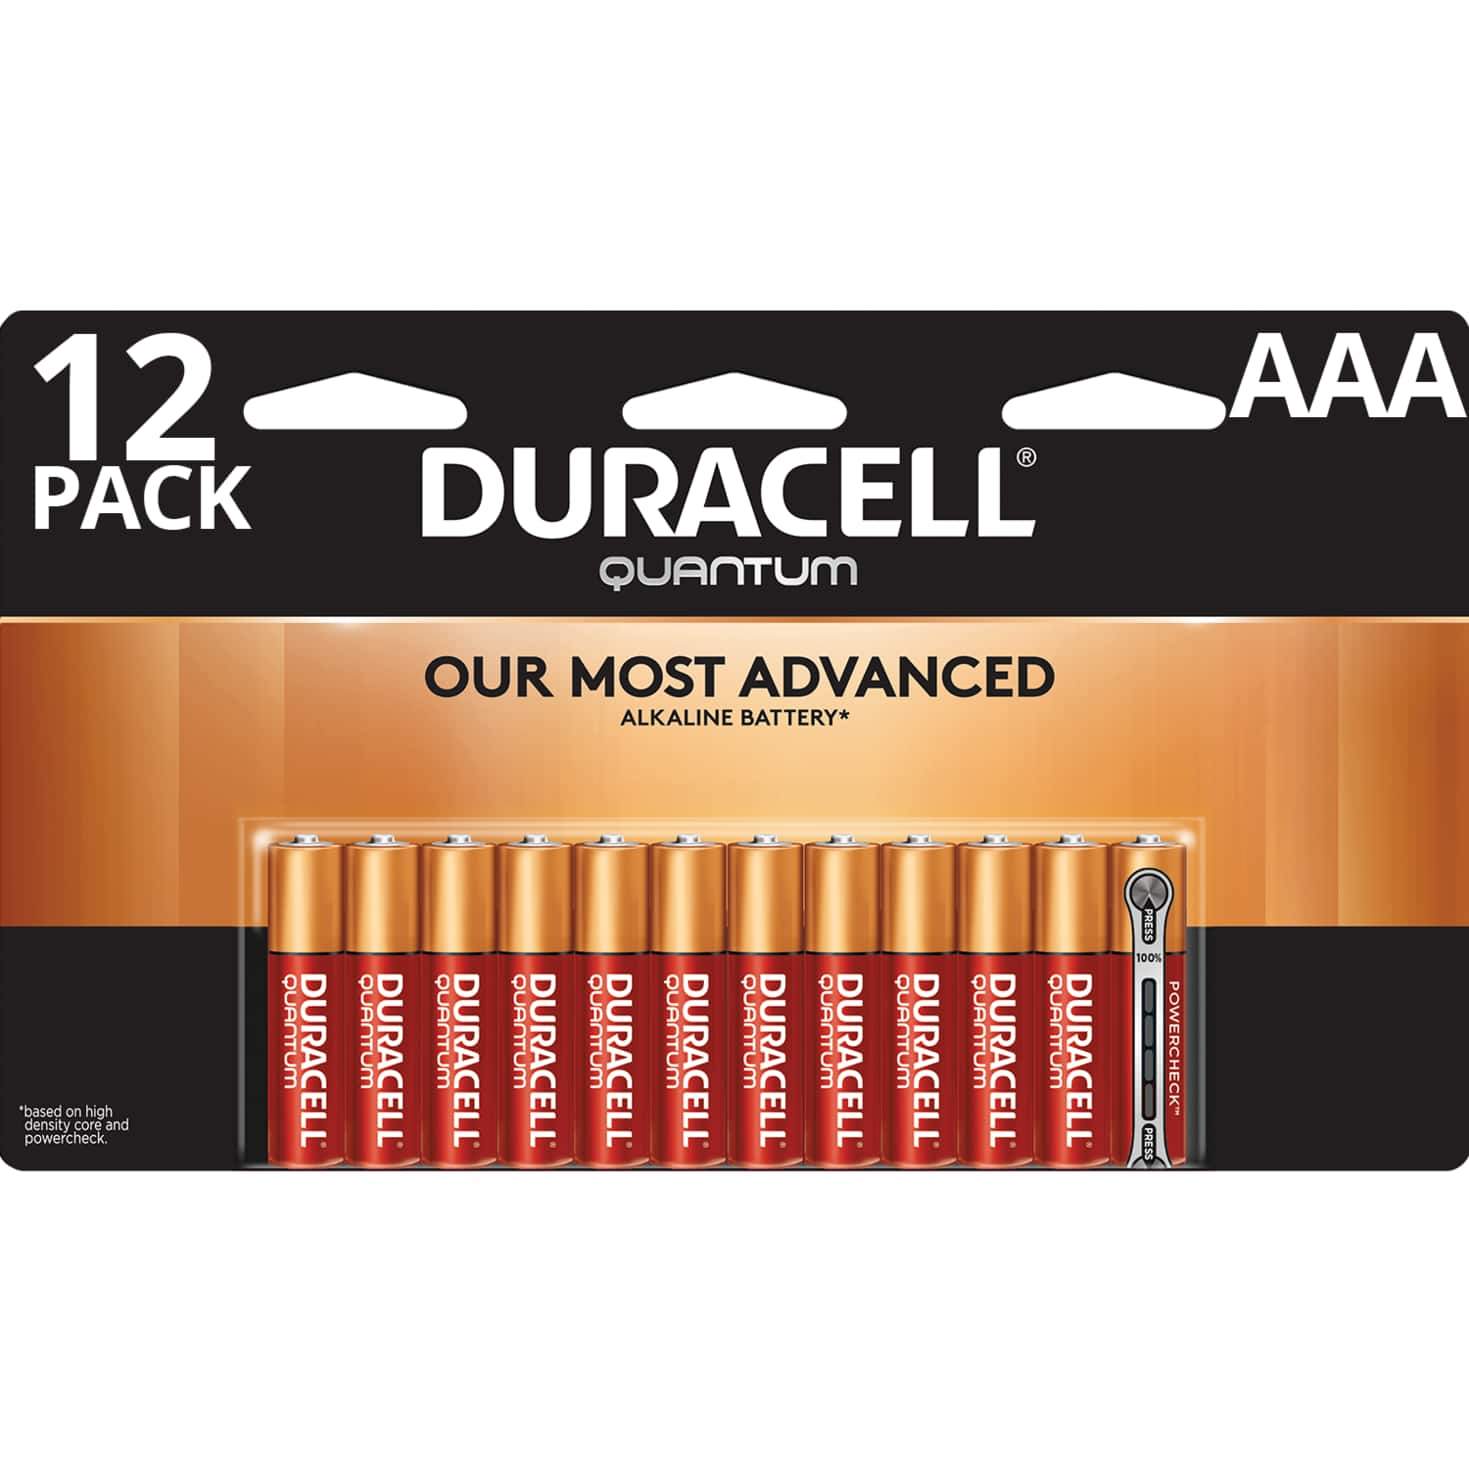 YMMV - Walmart Duracell 12 pack AAA Batteries with